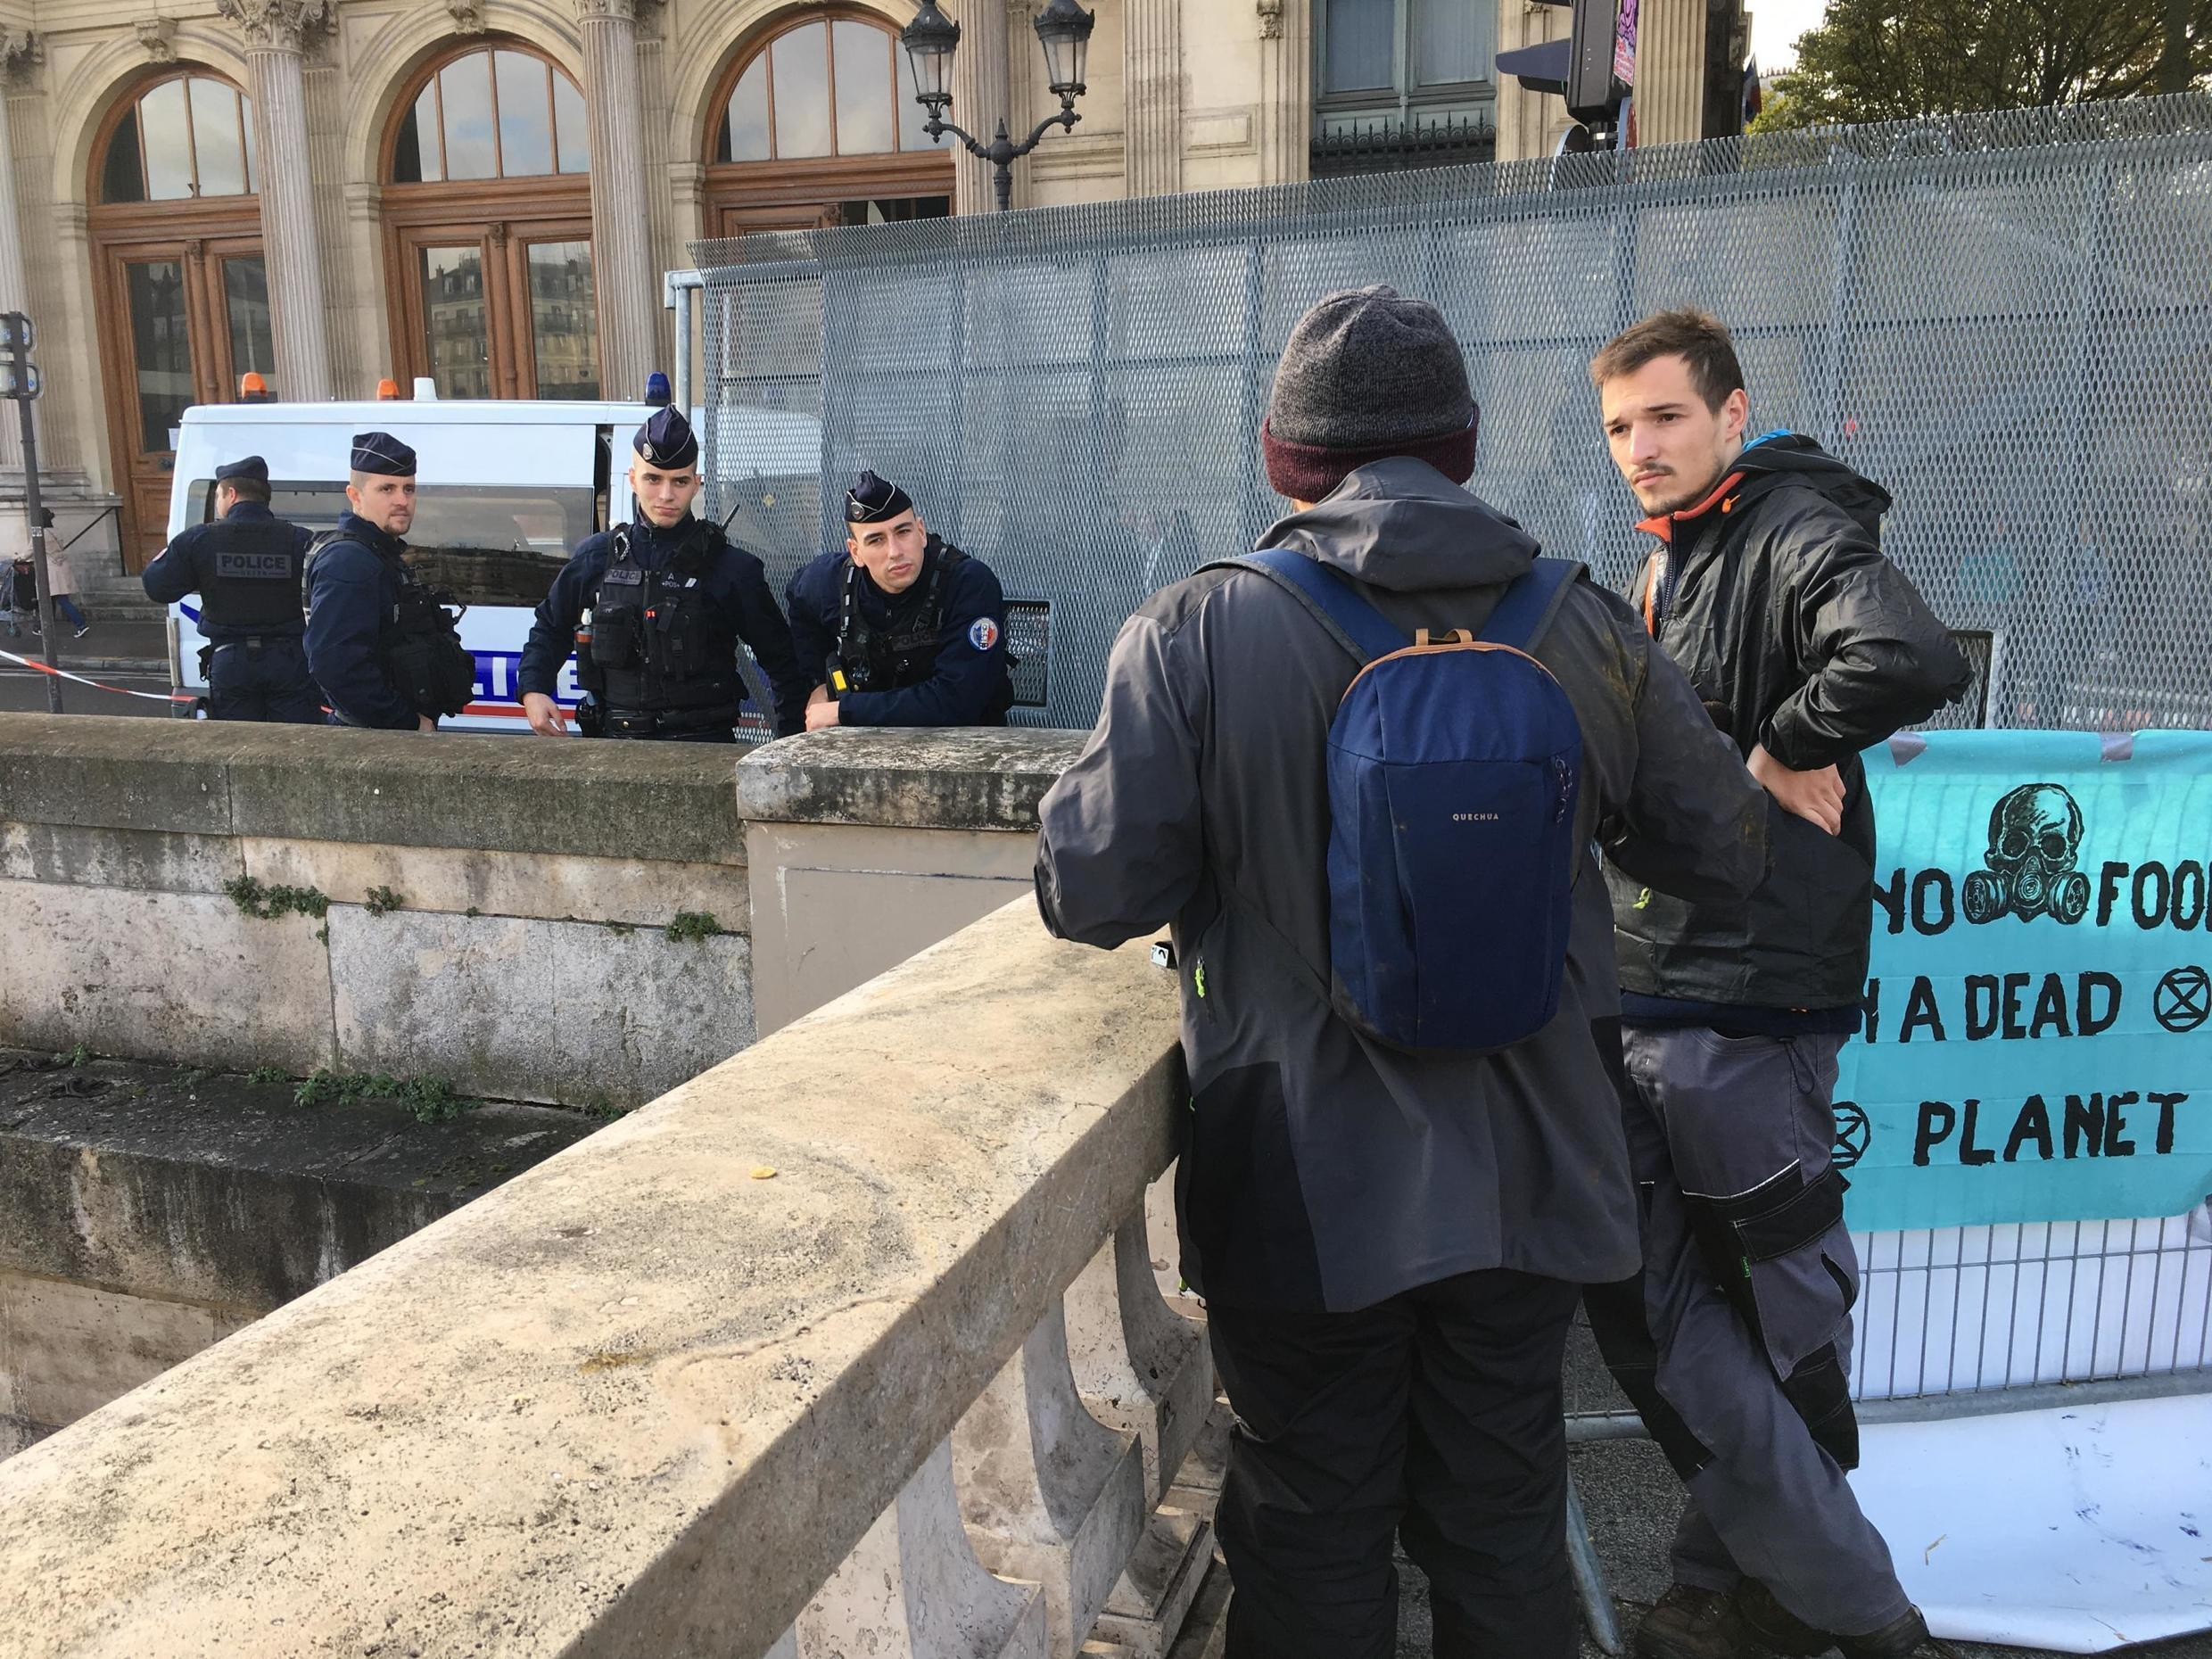 Activists at the unauthorized gathering chat with police officers. Some police vehicles were parked around nearby streets, and activists wondered how long it would be before they are ordered to evacuate the square.